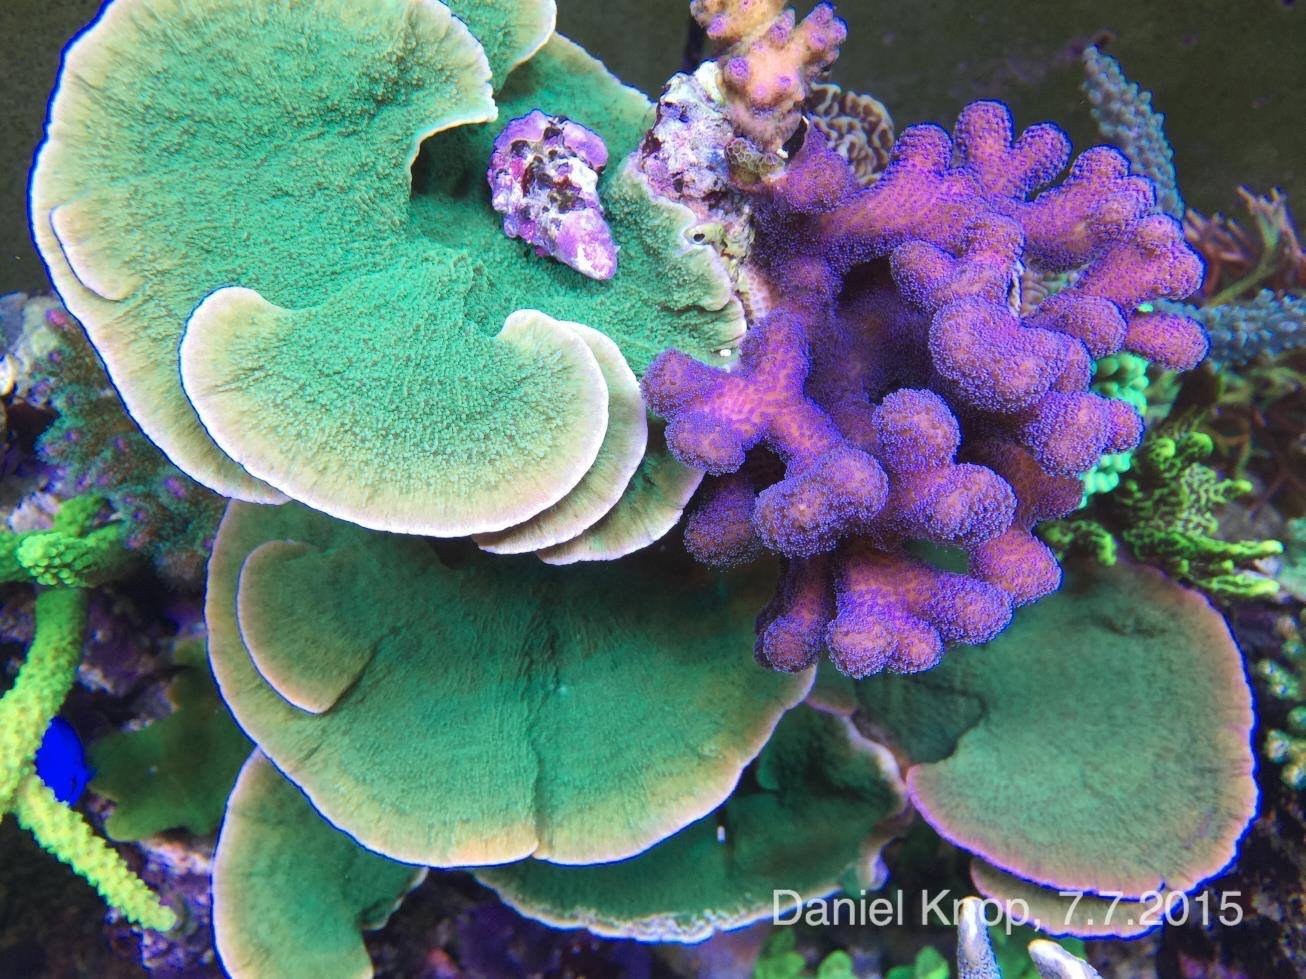 A purple Stylophora is extremely well framed by the contrasting coloration and shape of green Montipora capricornis.